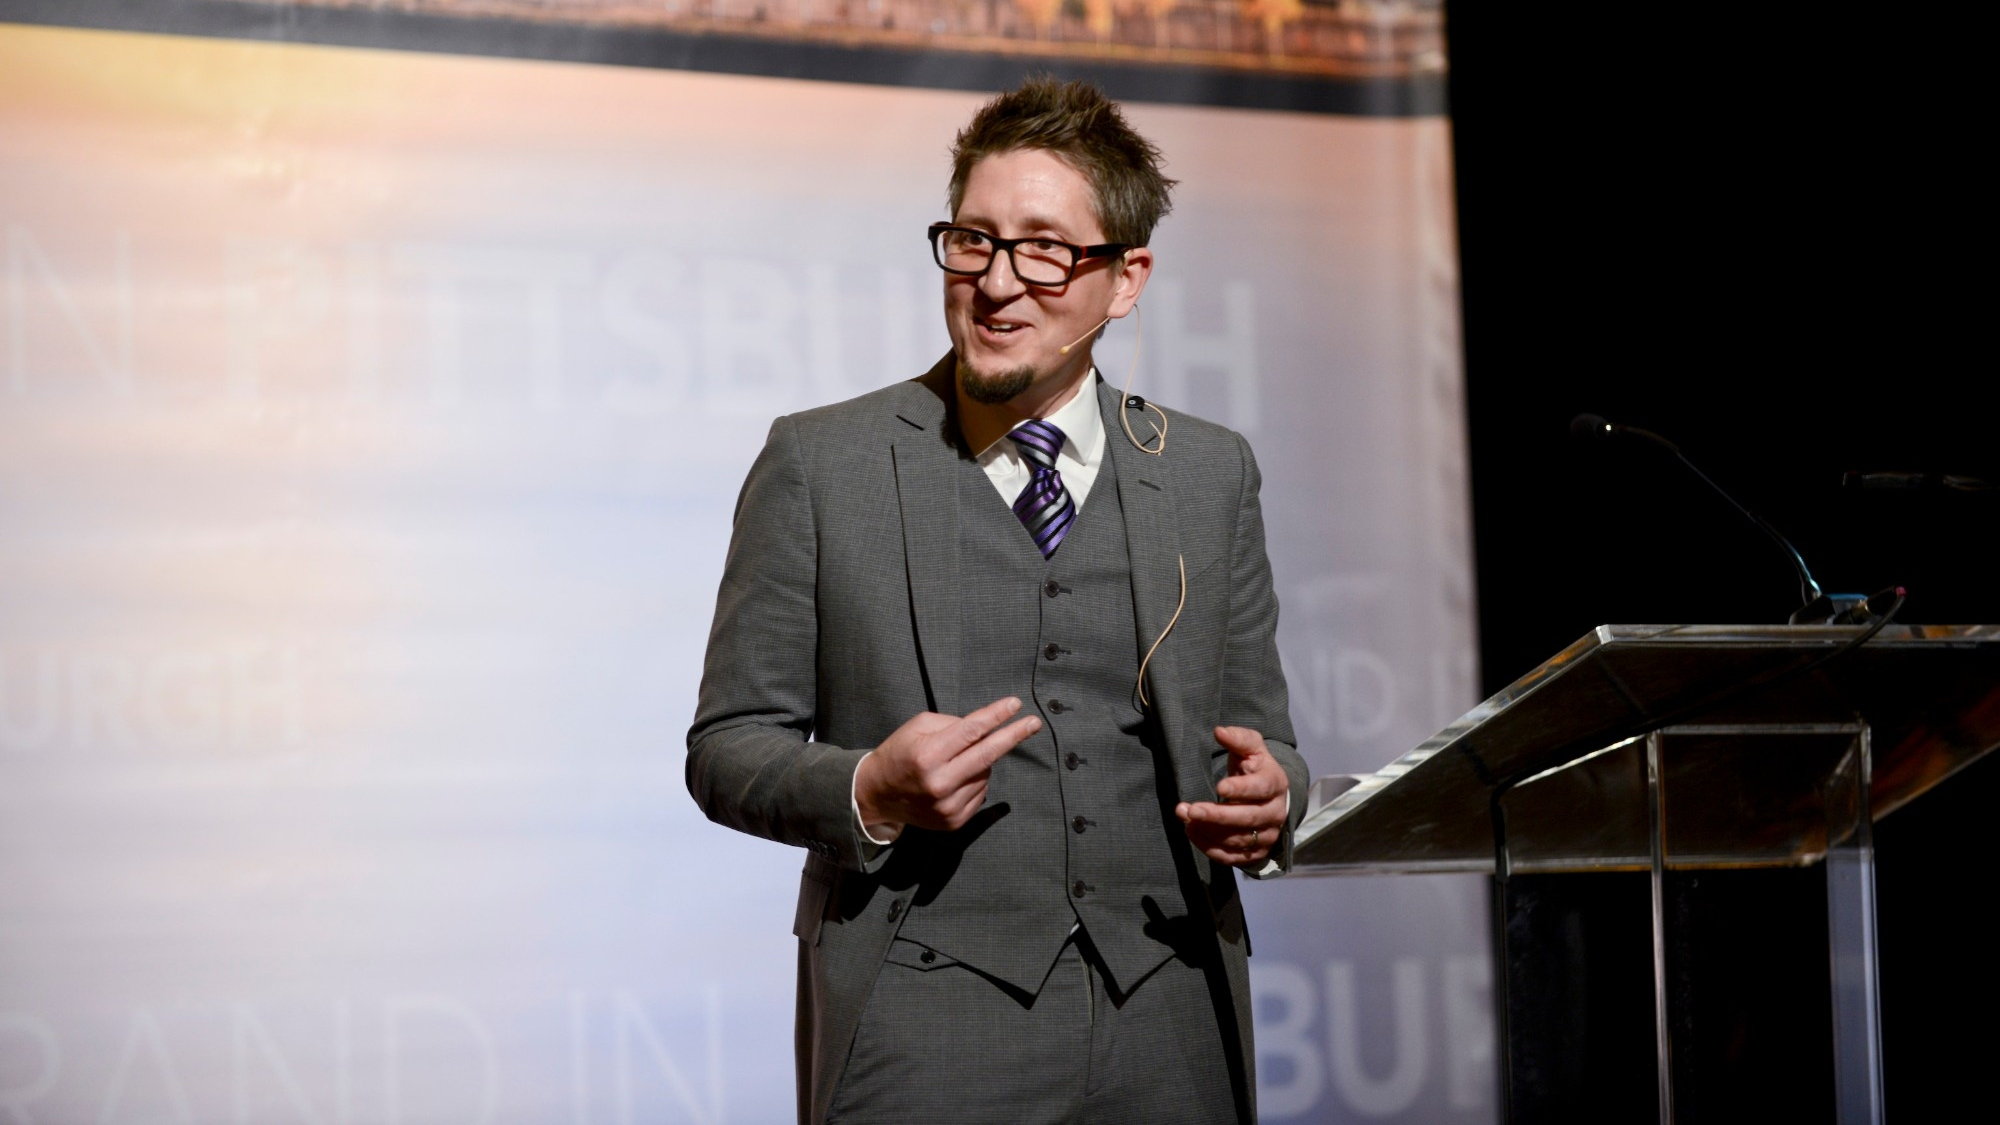 RAND senior policy researcher Beau Kilmer discusses the U.S. opioid crisis at a RAND event in Pittsburgh, April 10, 2019, photo by Michael Reed Photography